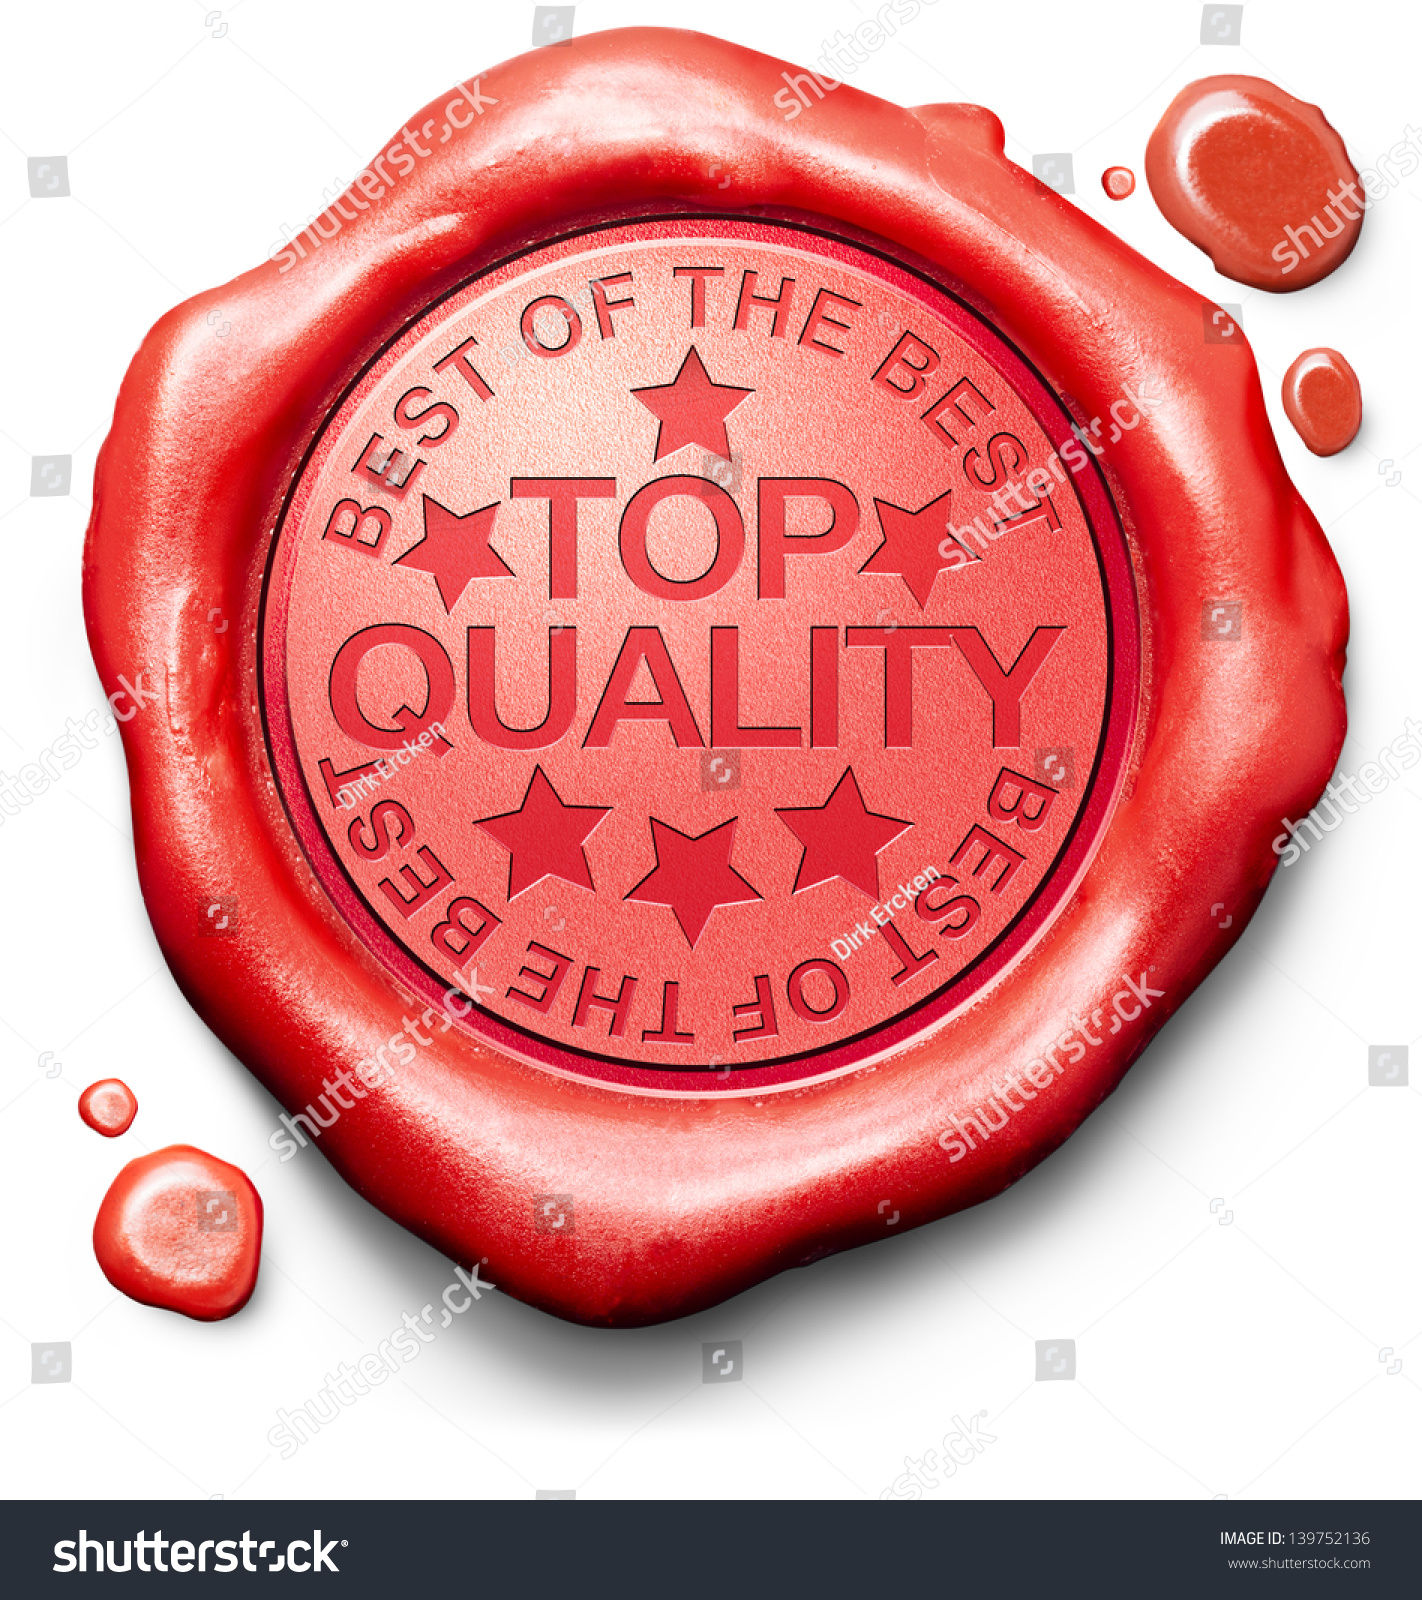 top quality best best label red stock illustration  top quality best of best label red wax stamp icon confirmed qualities certificate 100% guaranteed